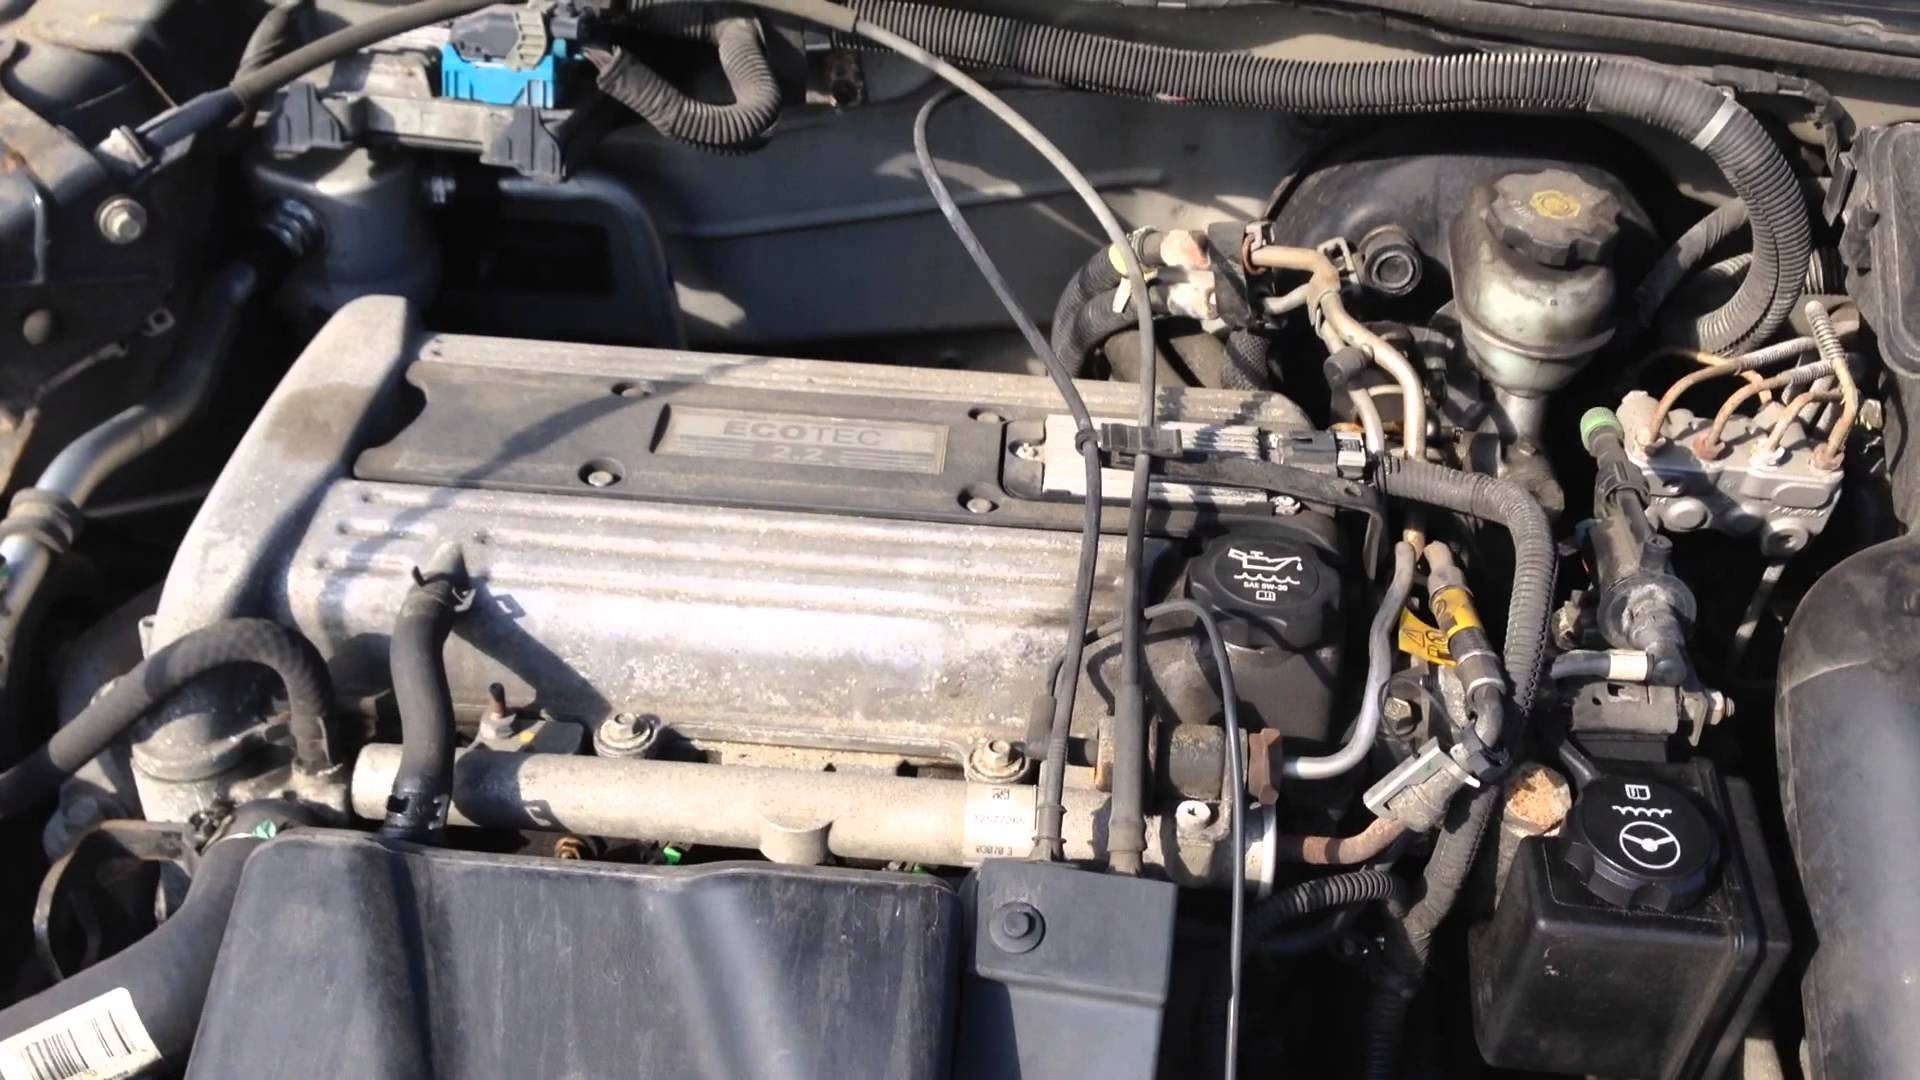 cavalier 2 4 engine diagram wiring library 2 2 ecotec engine diagram 2 e3ce229 2003 chevrolet cavalier 2 2 ecotec engine test of